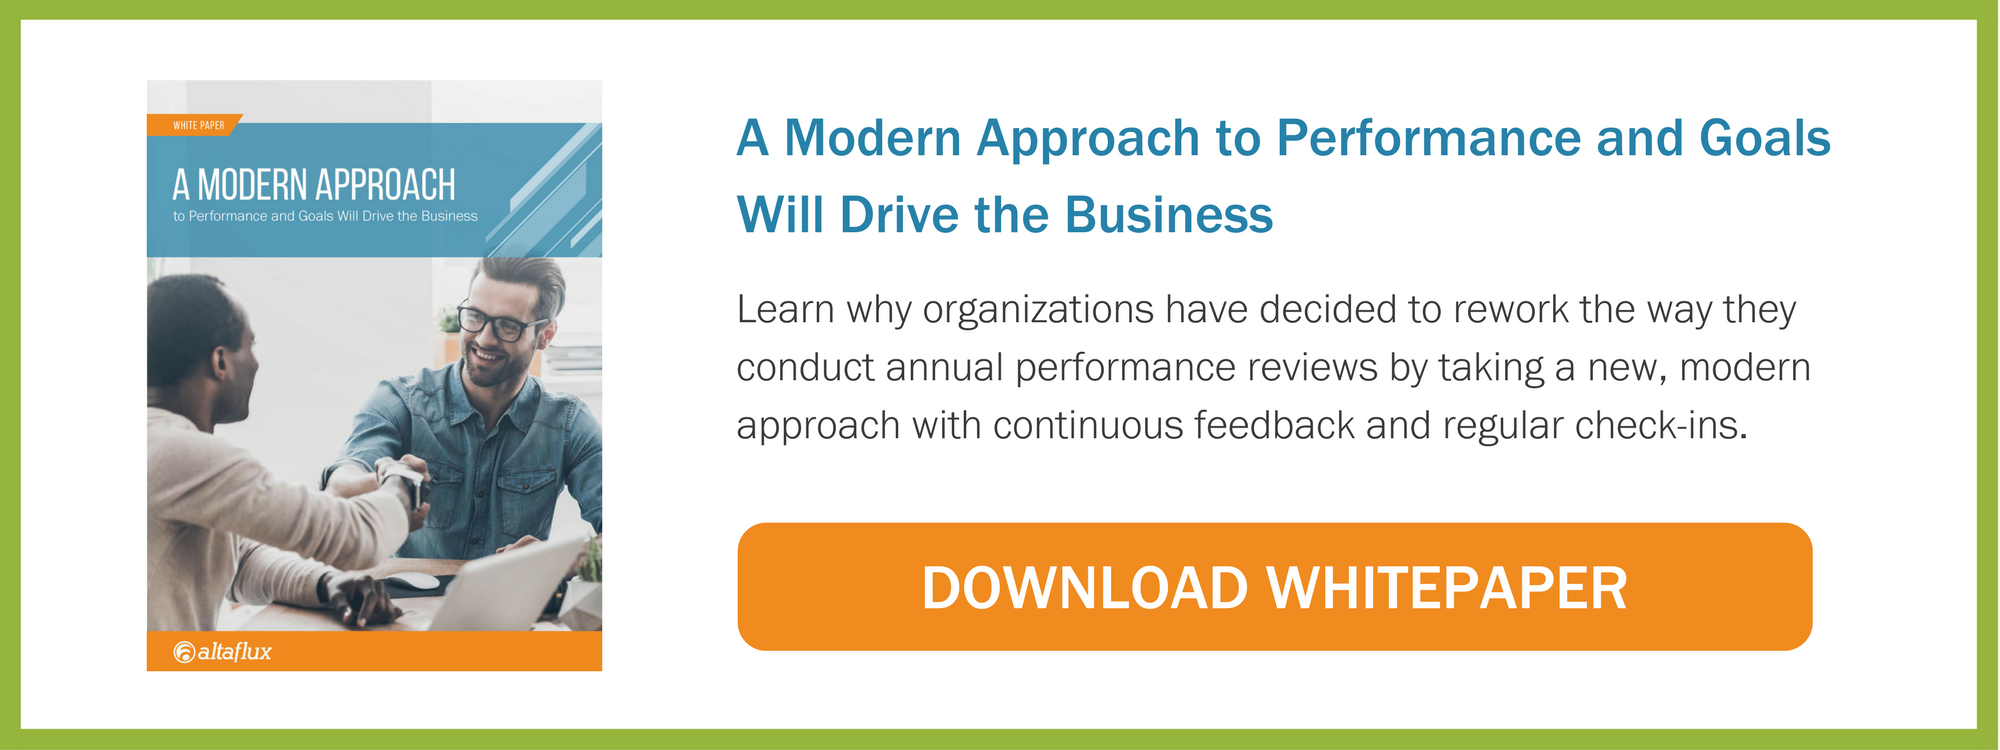 A Modern Approach to Performance Management